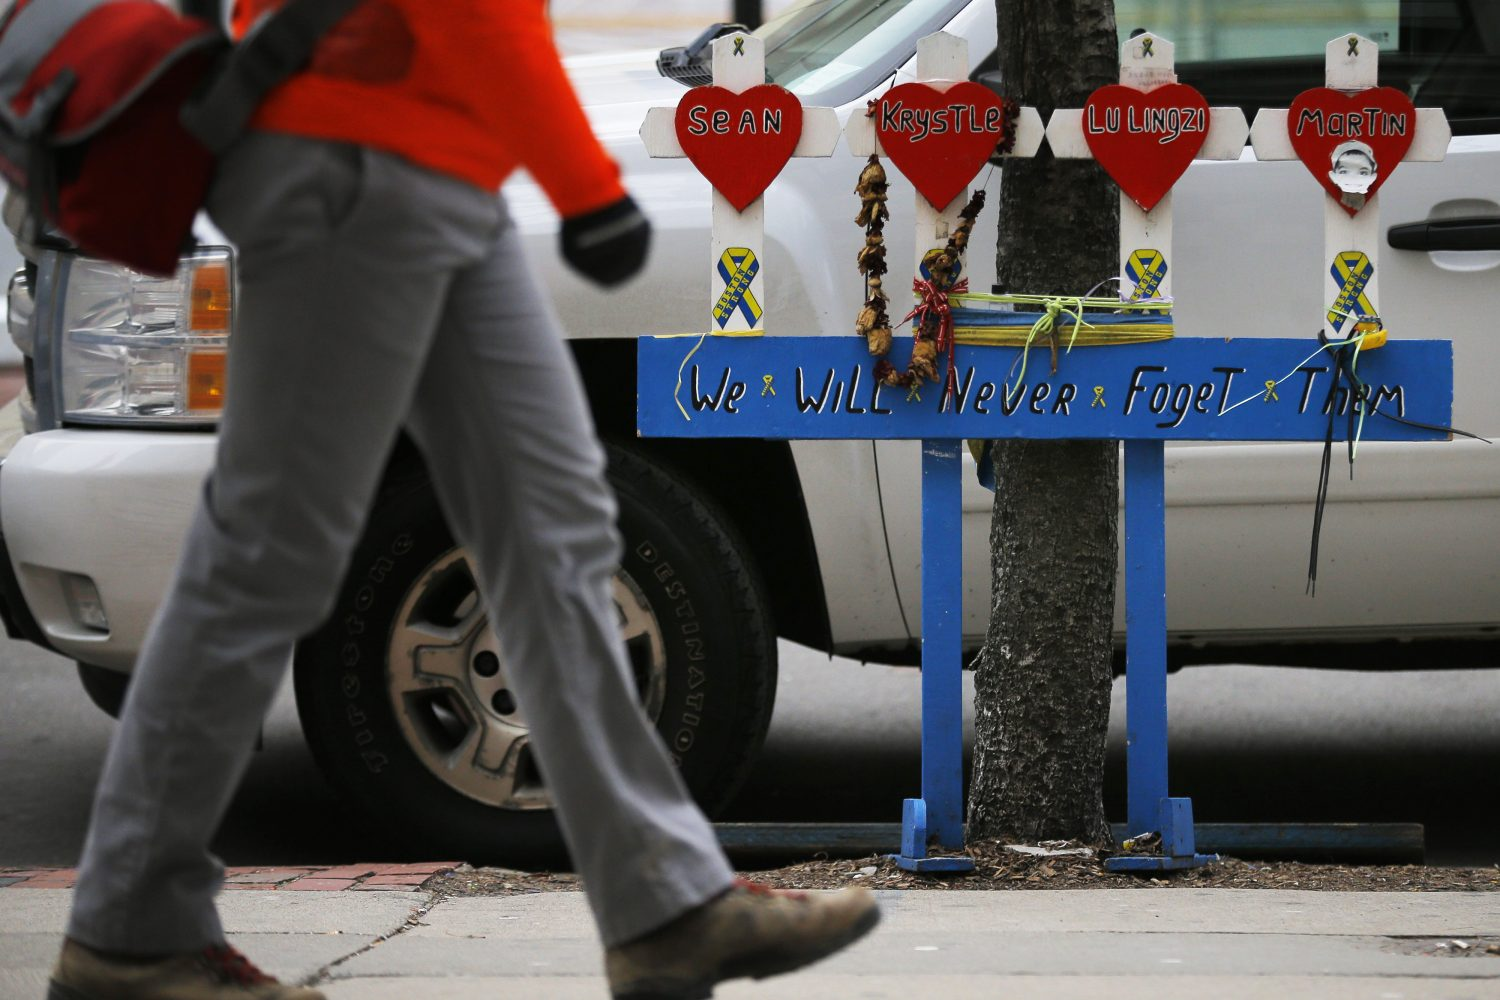 FILE PHOTO: A pedestrian walks past a memorial for the victims of the Boston Marathon bombings and its aftermath near the race's finish line, on the second day of jury selection in the trial of accused Boston Marathon bomber Dzhokhar Tsarnaev in Boston, Massachusetts January 6, 2015. REUTERS/Brian Snyder